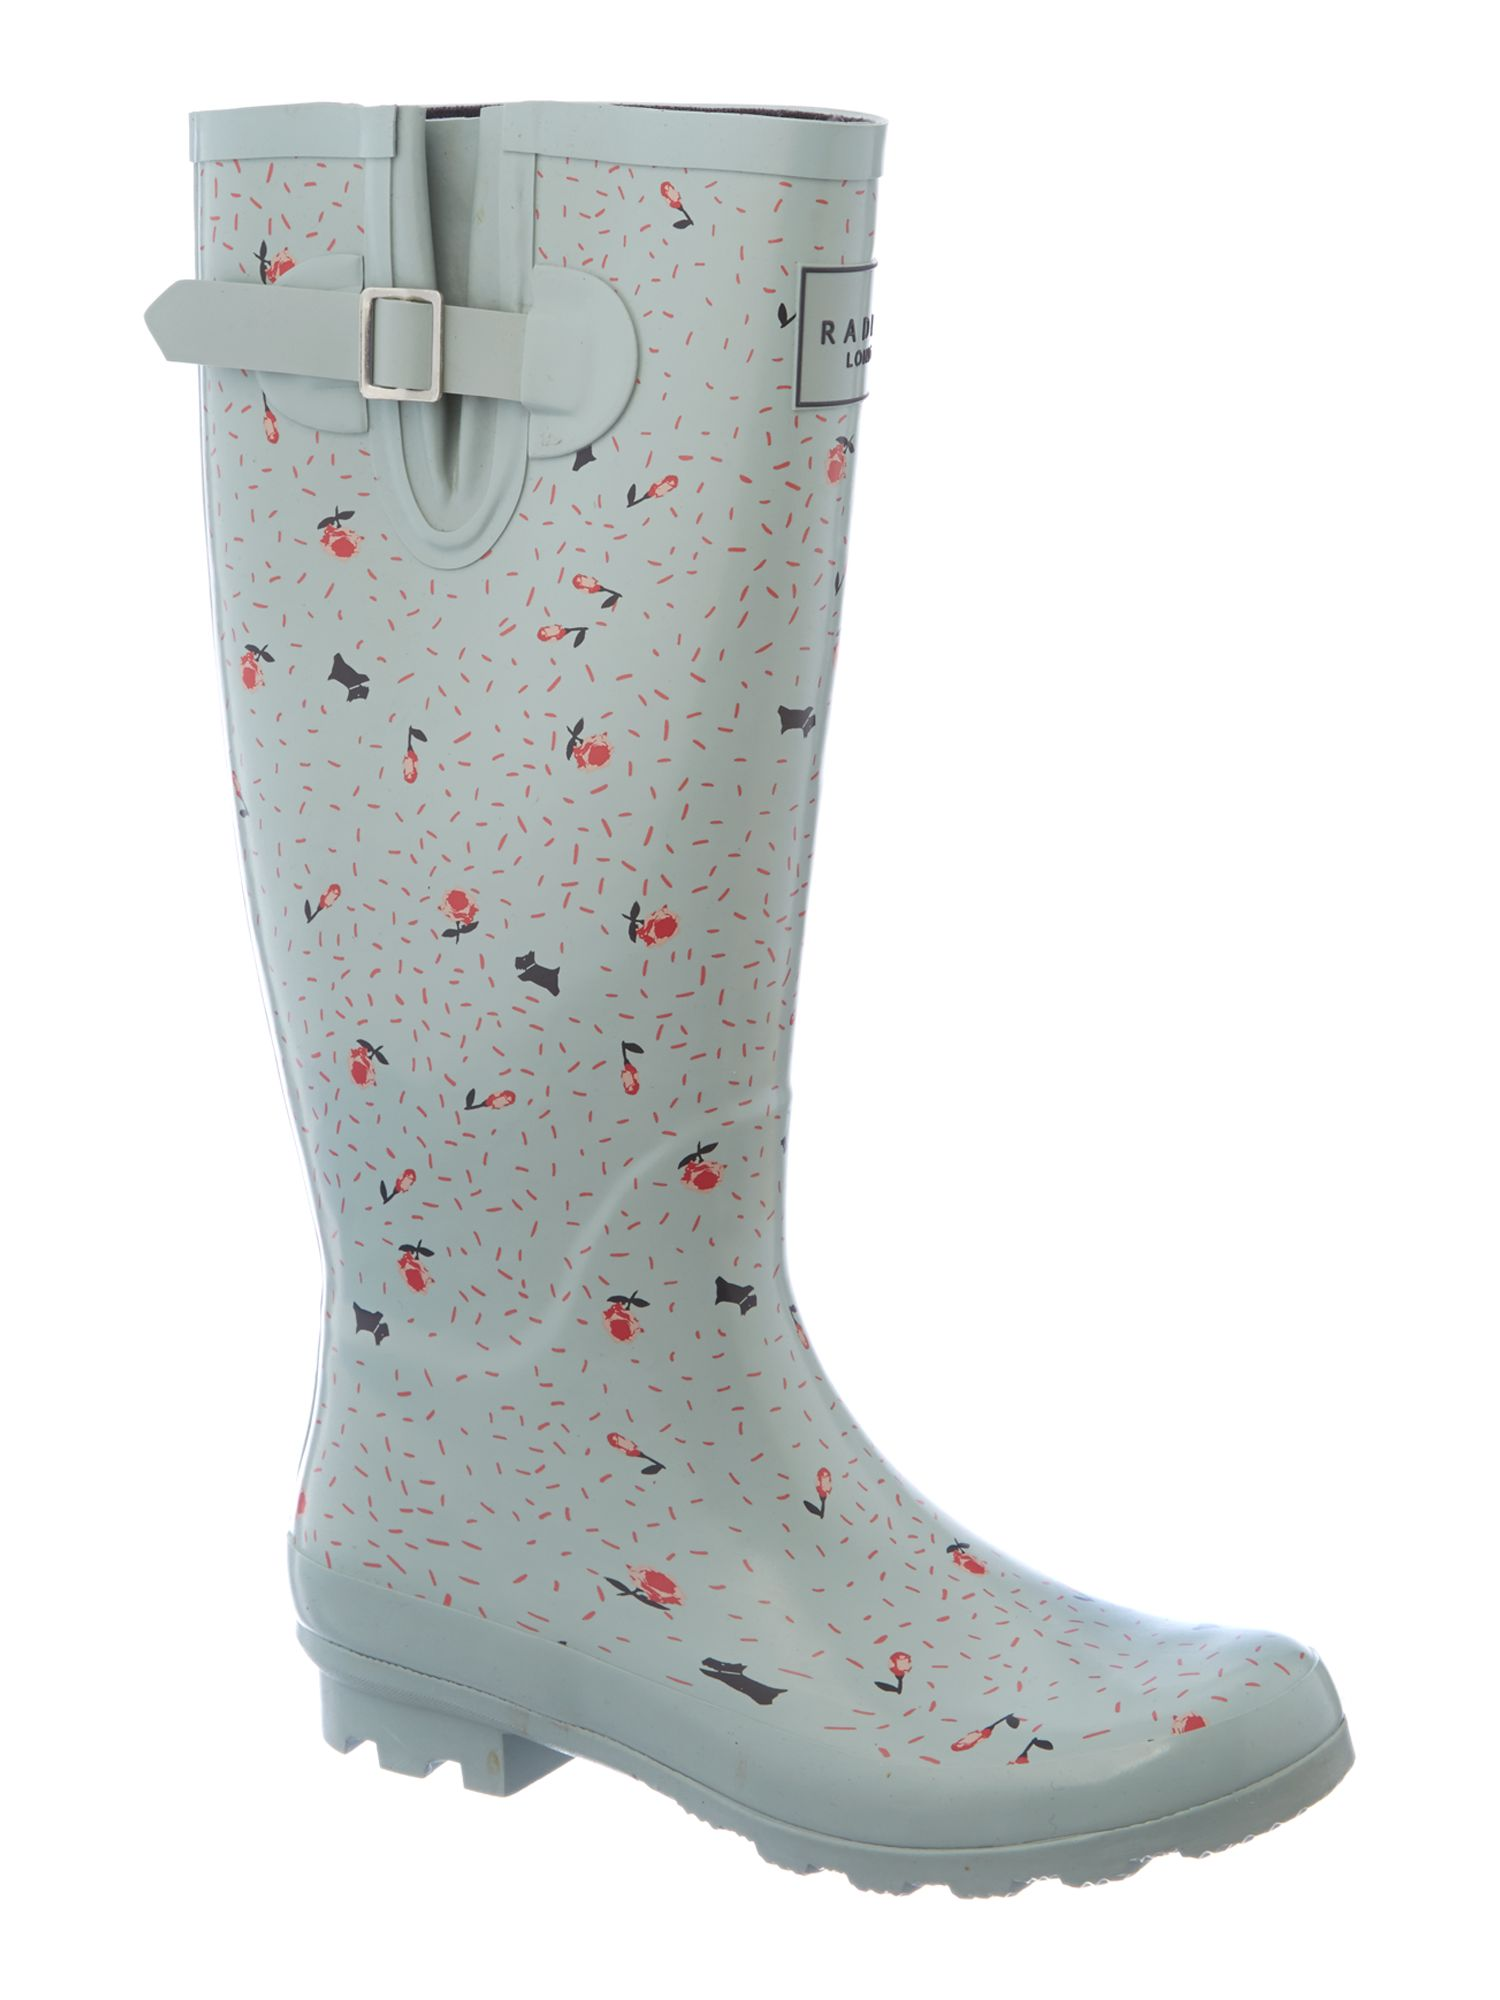 Emerson tall welly